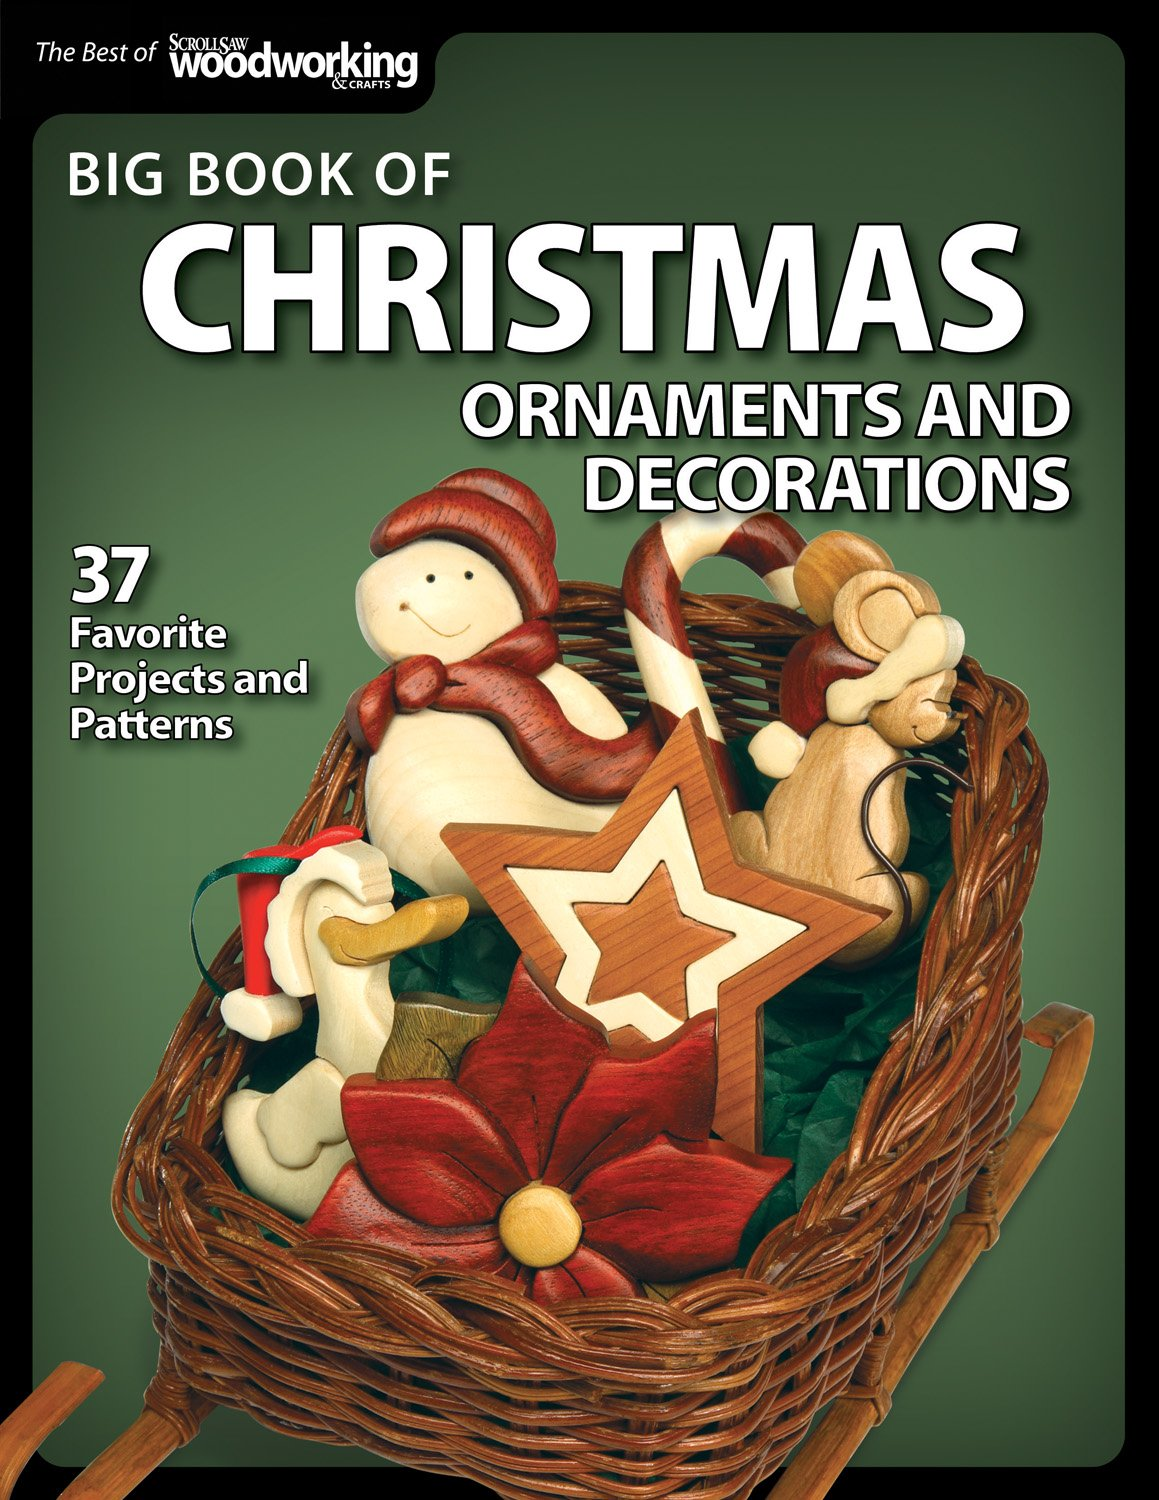 Big Book of Christmas Ornaments and Decorations: 38 Favorite Projects and Patterns (Best of Scroll Saw Woodworking & Crafts)